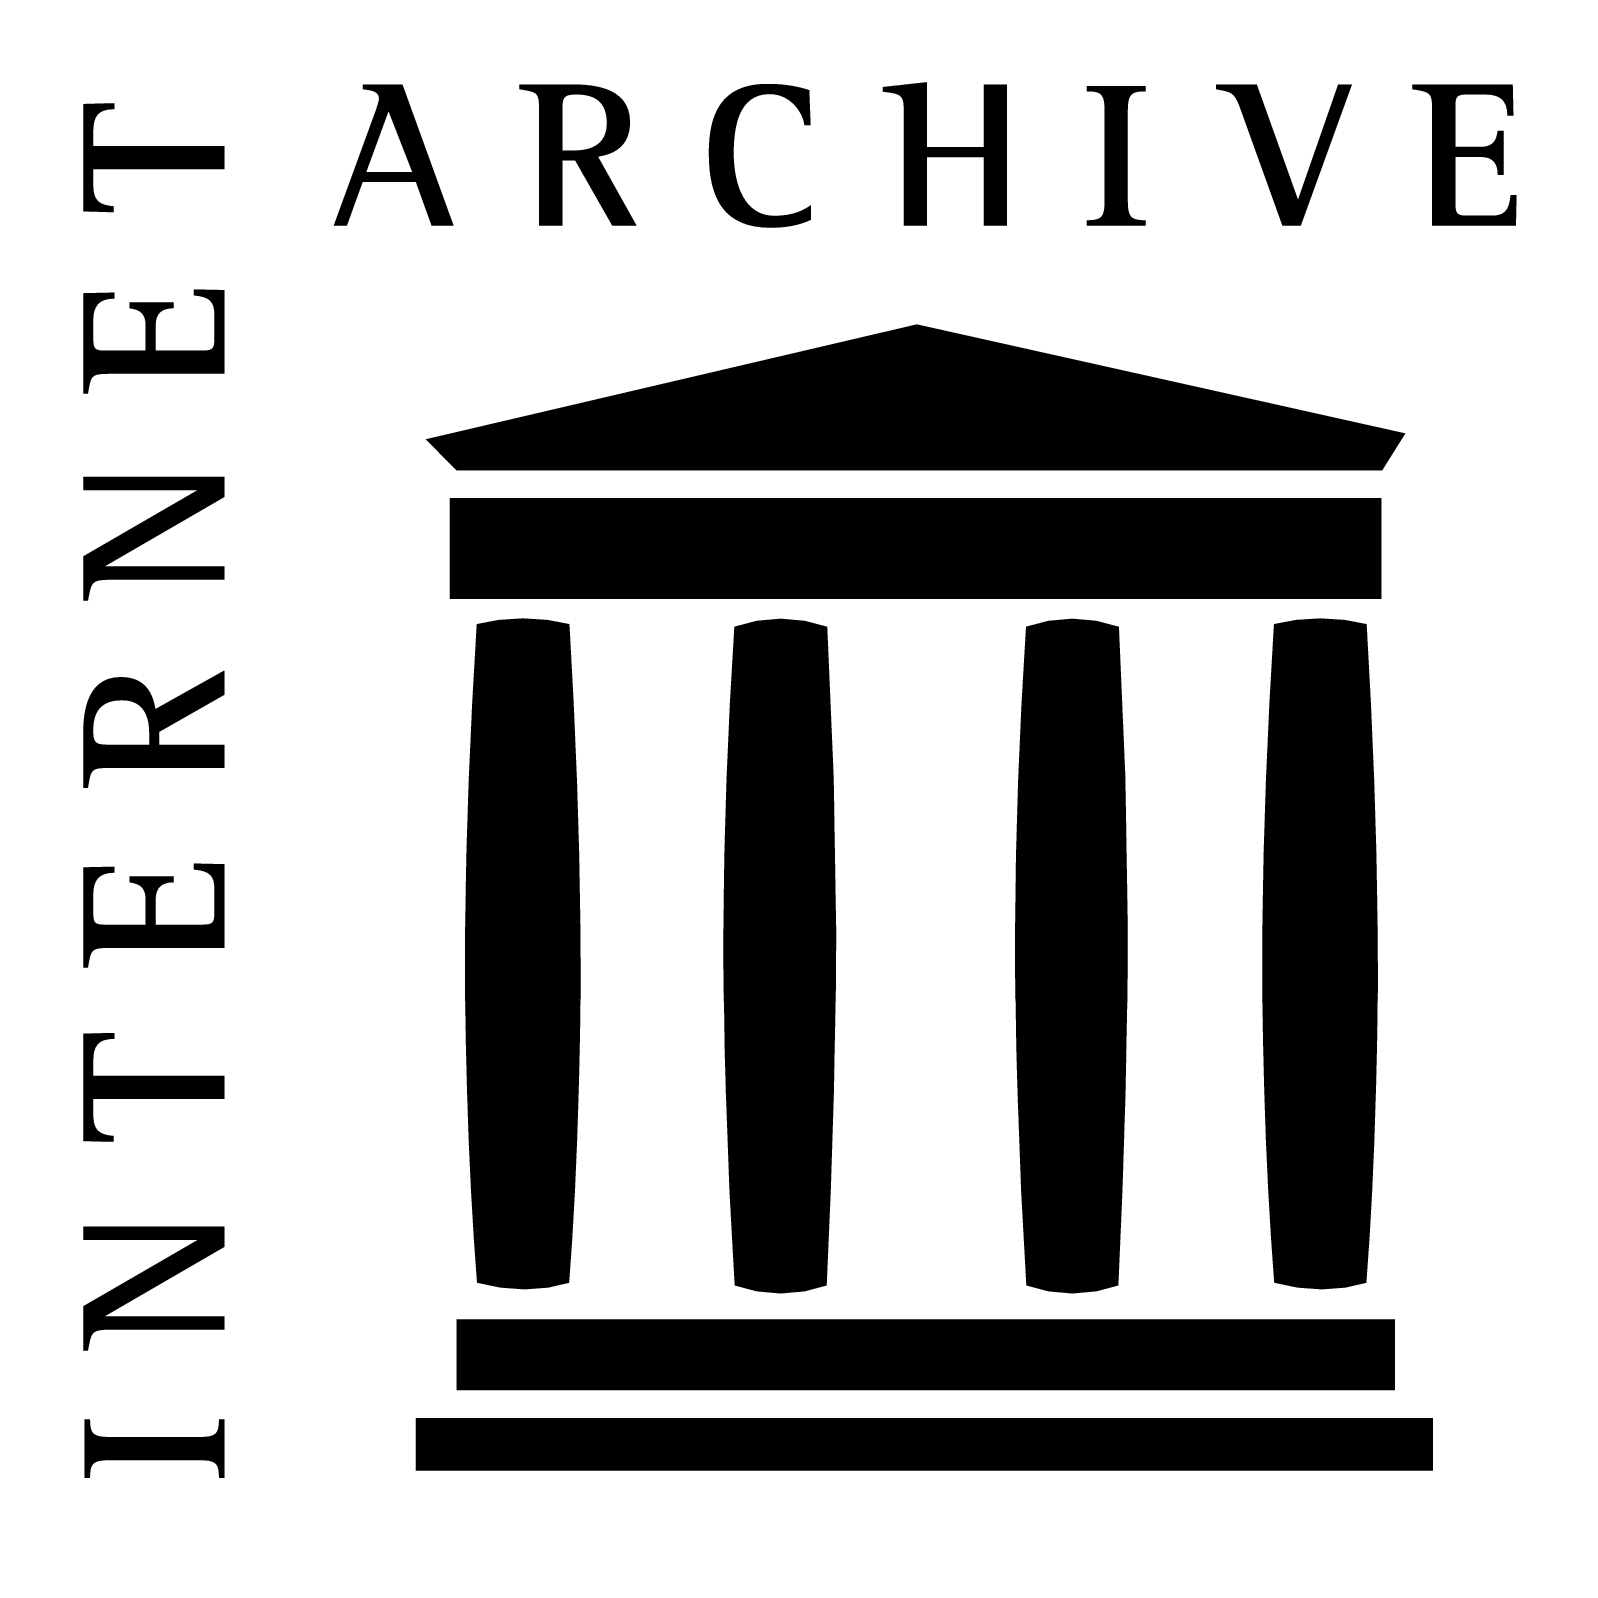 internet-archive-logo